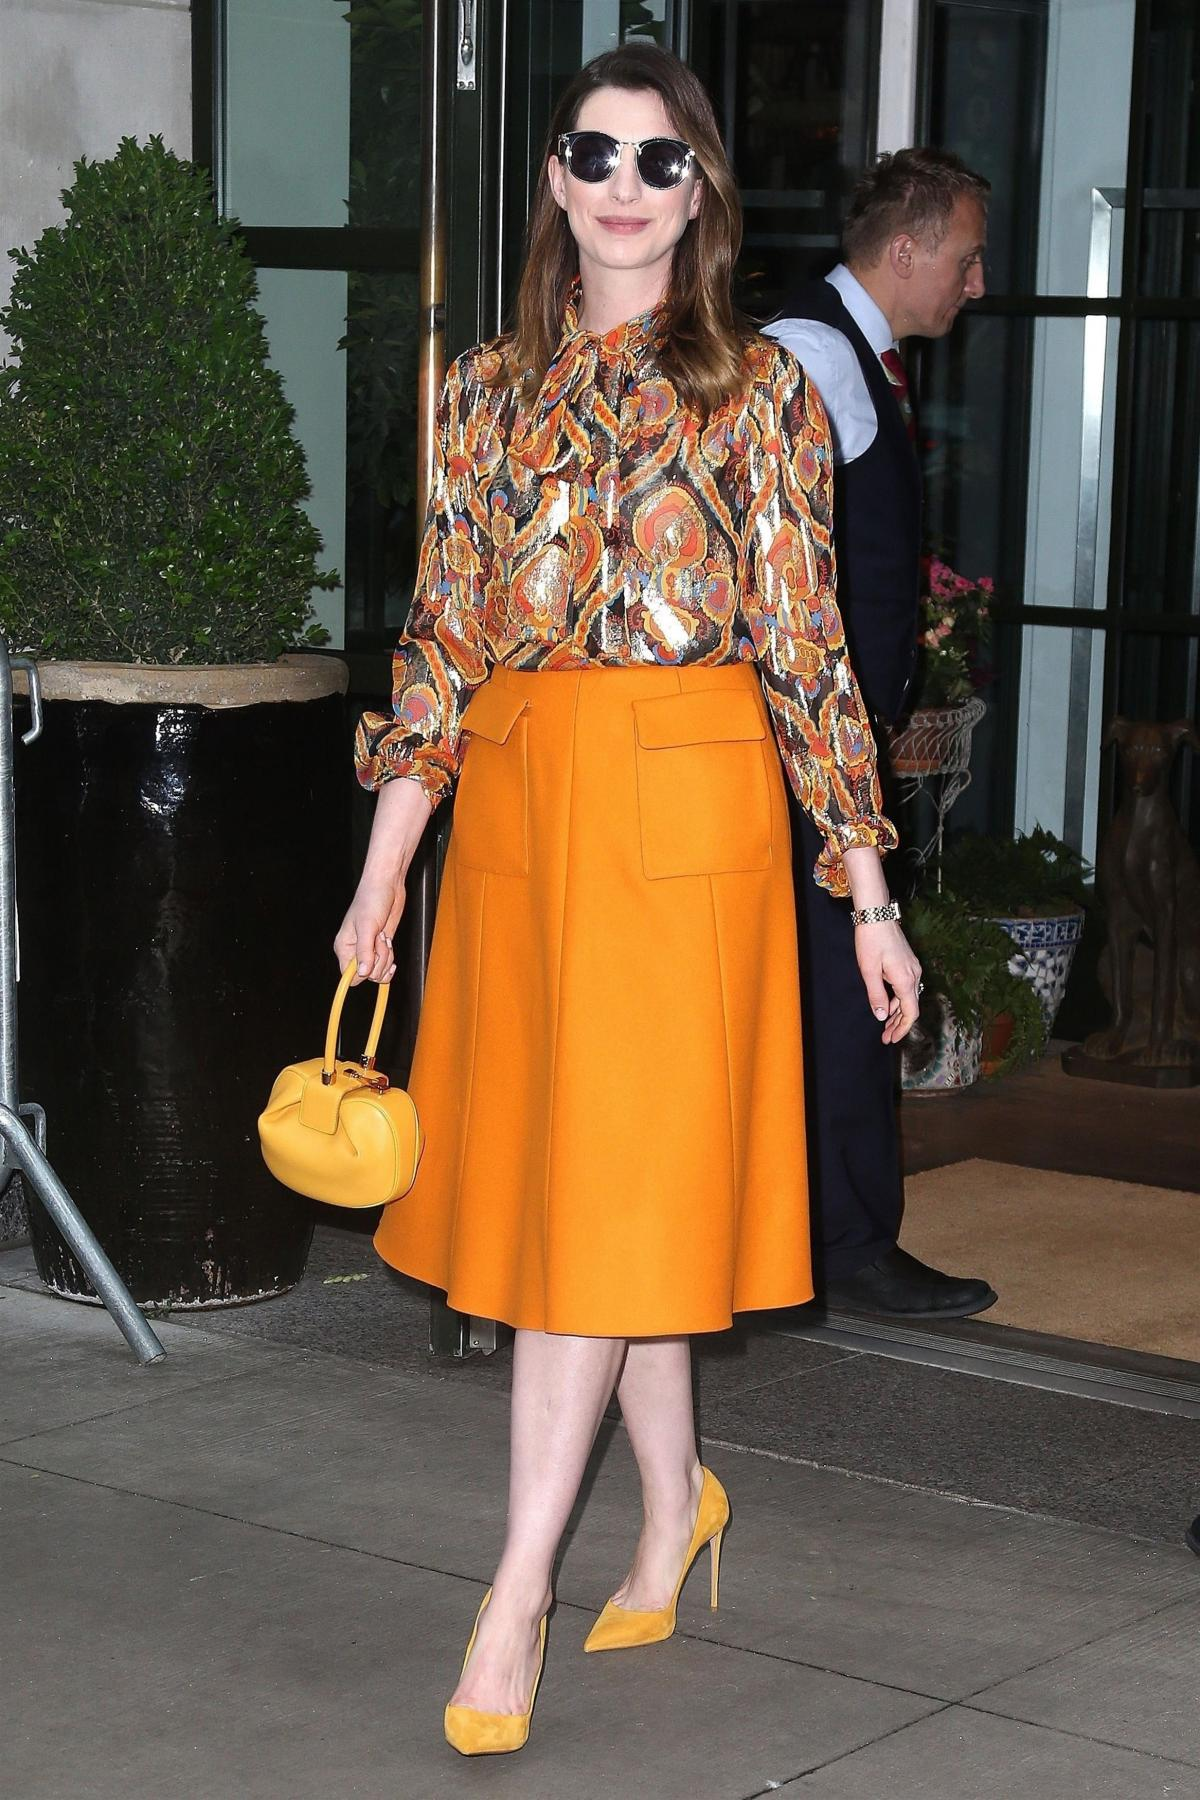 orange-midi-skirt-print-yellow-shoe-pumps-yellow-bag-orange-top-blouse-peasant-hairr-sun-annehathaway-fall-winter-dinner.jpg